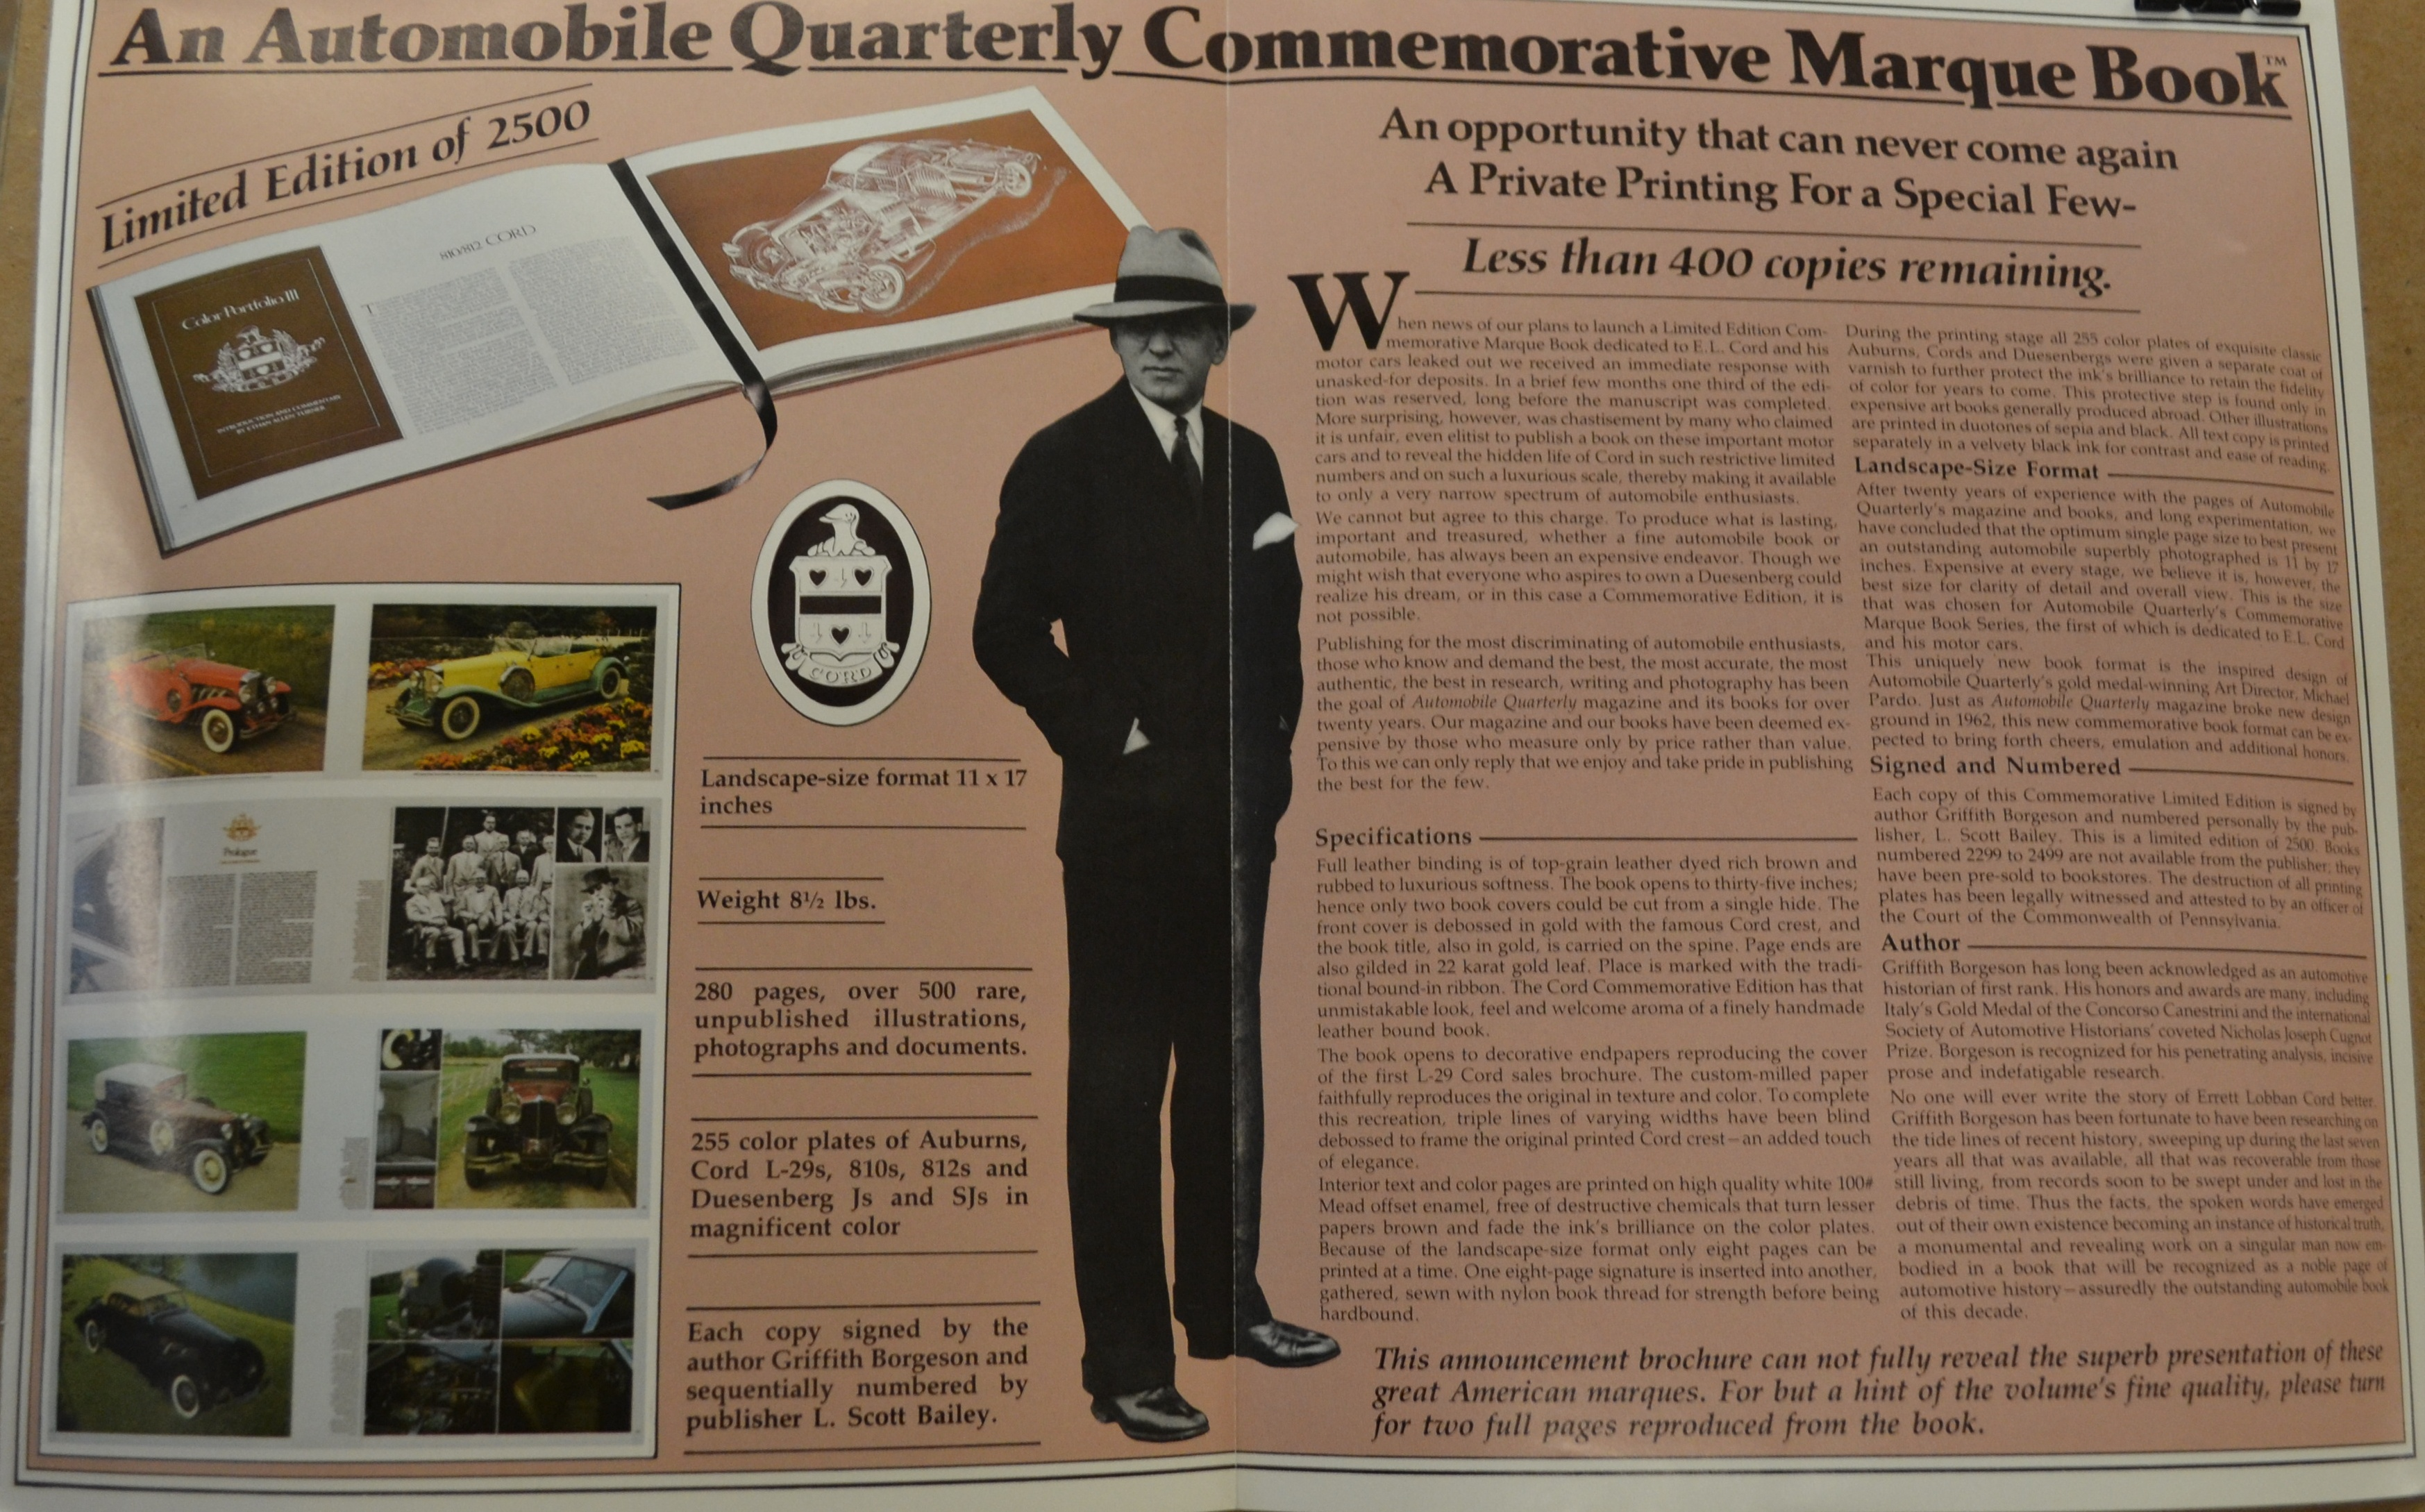 306 - QUARTERLY COMEMORATIVE MARQUE BOOK